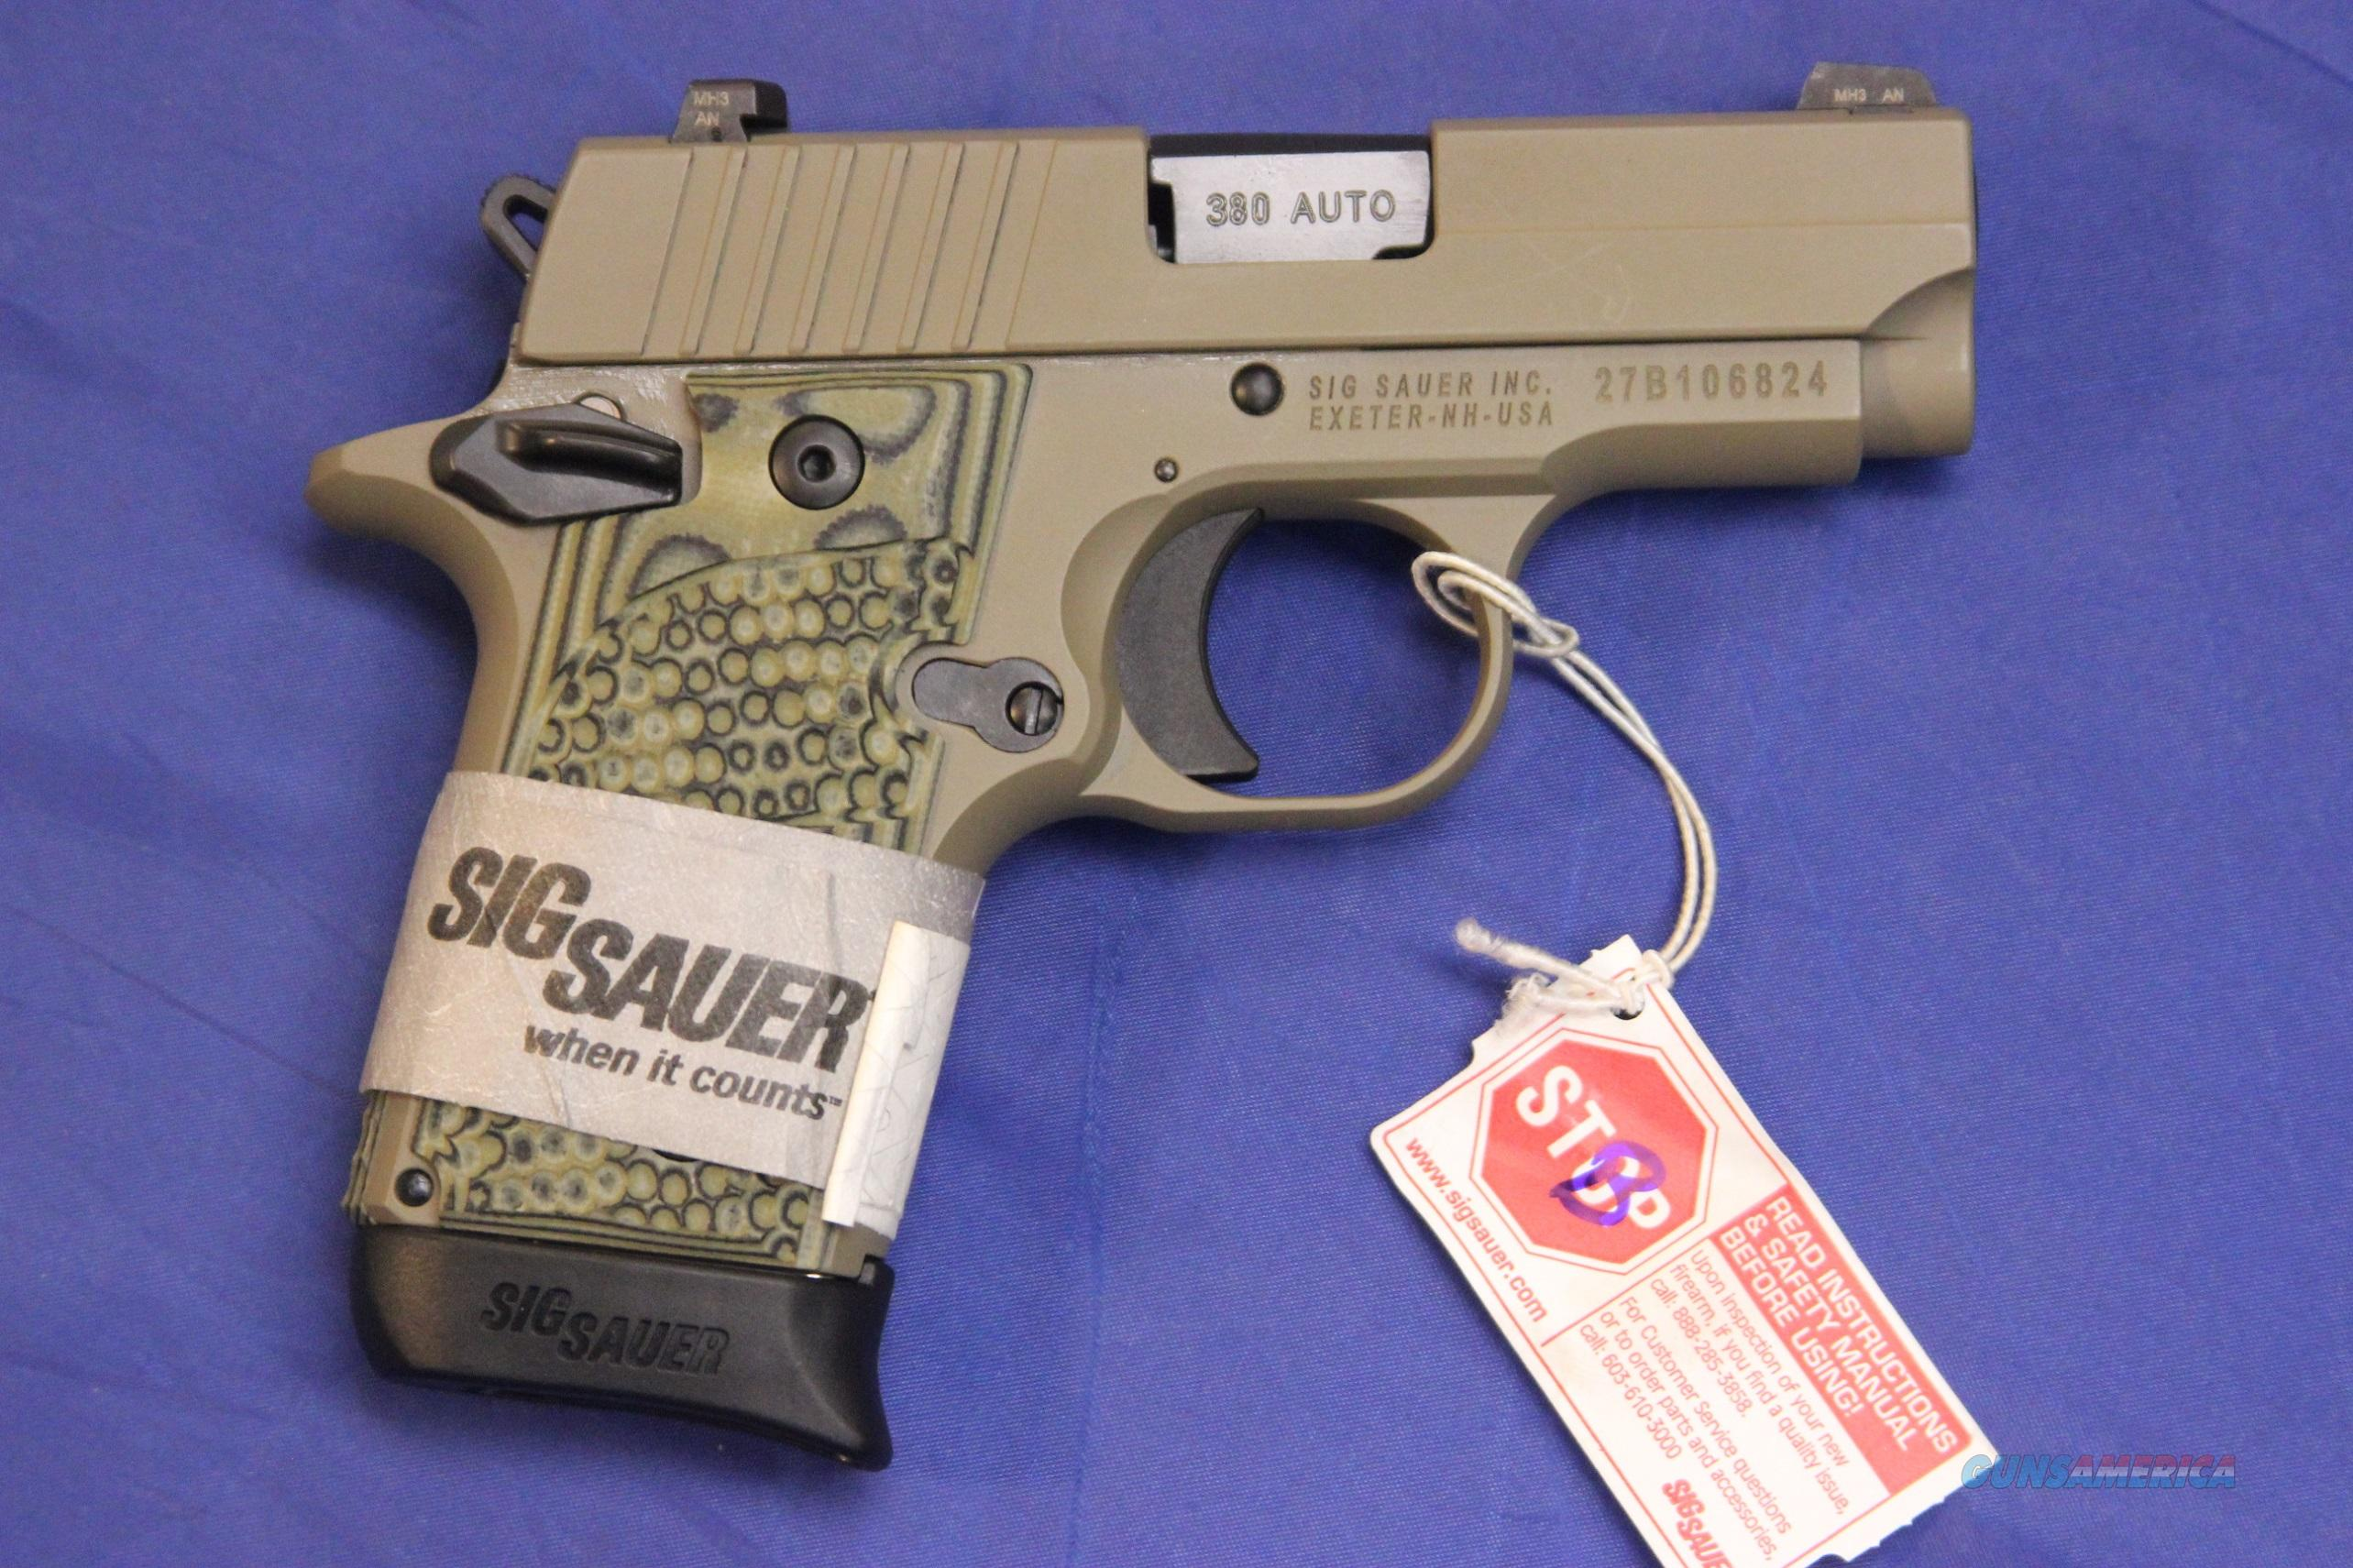 SIG SAUER P238 SCORPION G-10 GRIPS - NEW!  Guns > Pistols > Sig - Sauer/Sigarms Pistols > P238